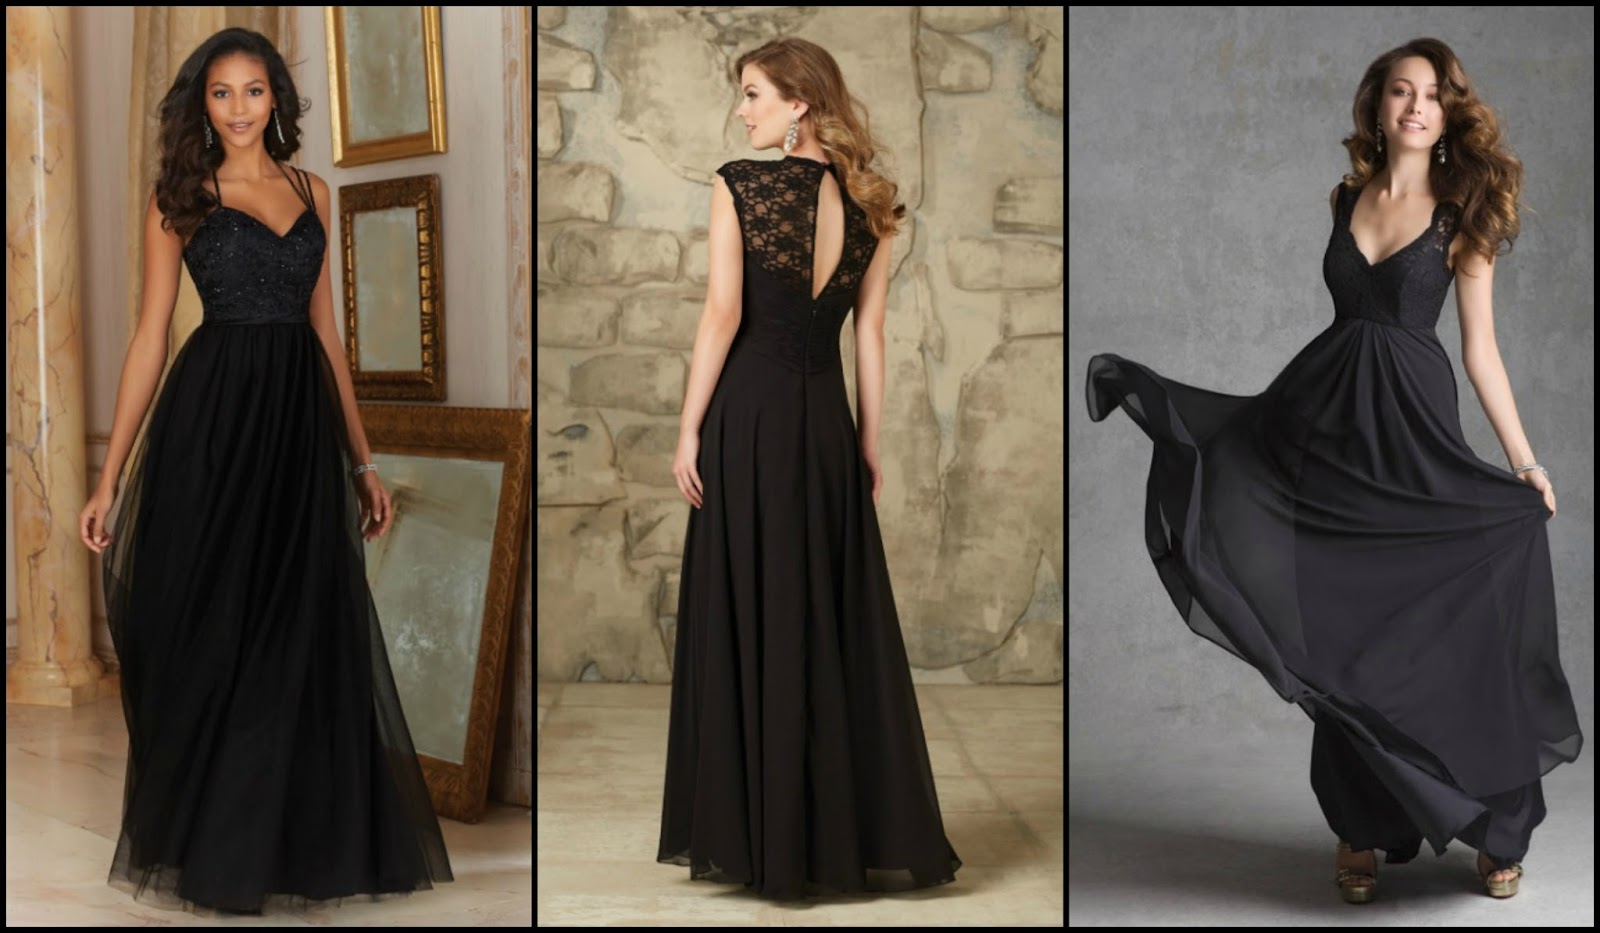 Brides of america online store elegant black bridesmaid dresses elegant black bridesmaid dresses for your wedding ombrellifo Image collections